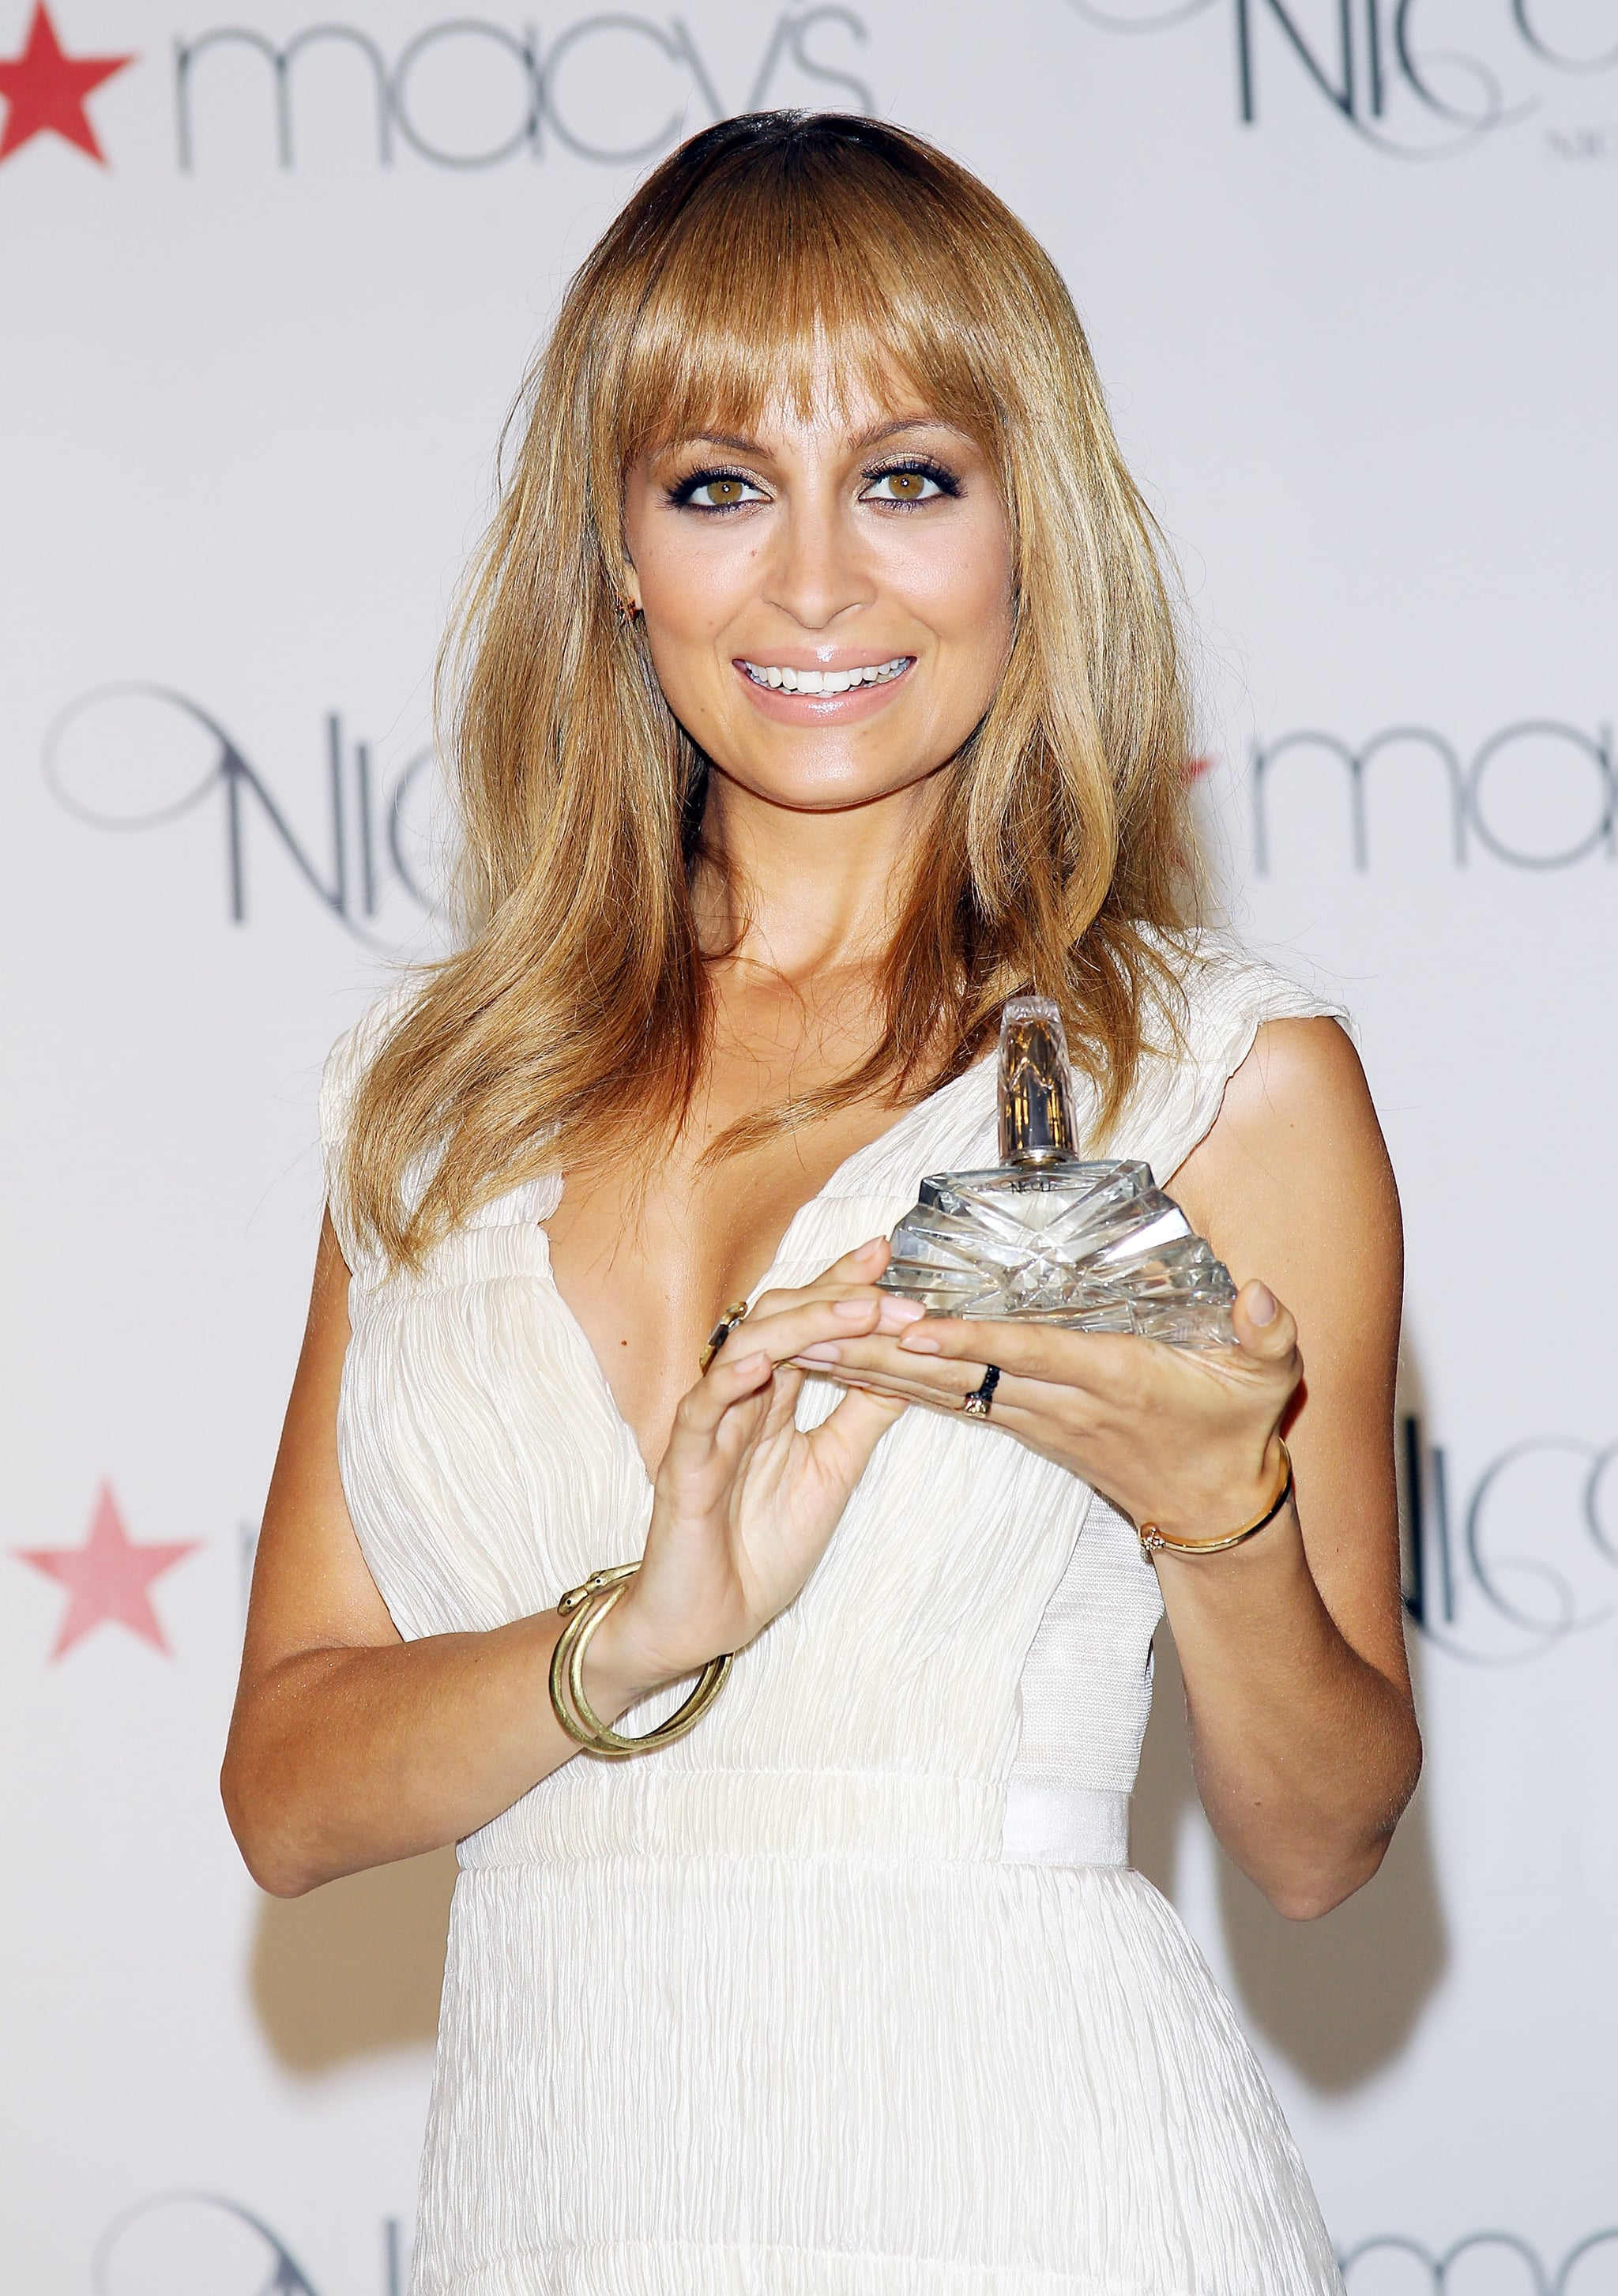 Nicole attended a launch event for her fragrance, Nicole, at Macy's in LA in August 2012.